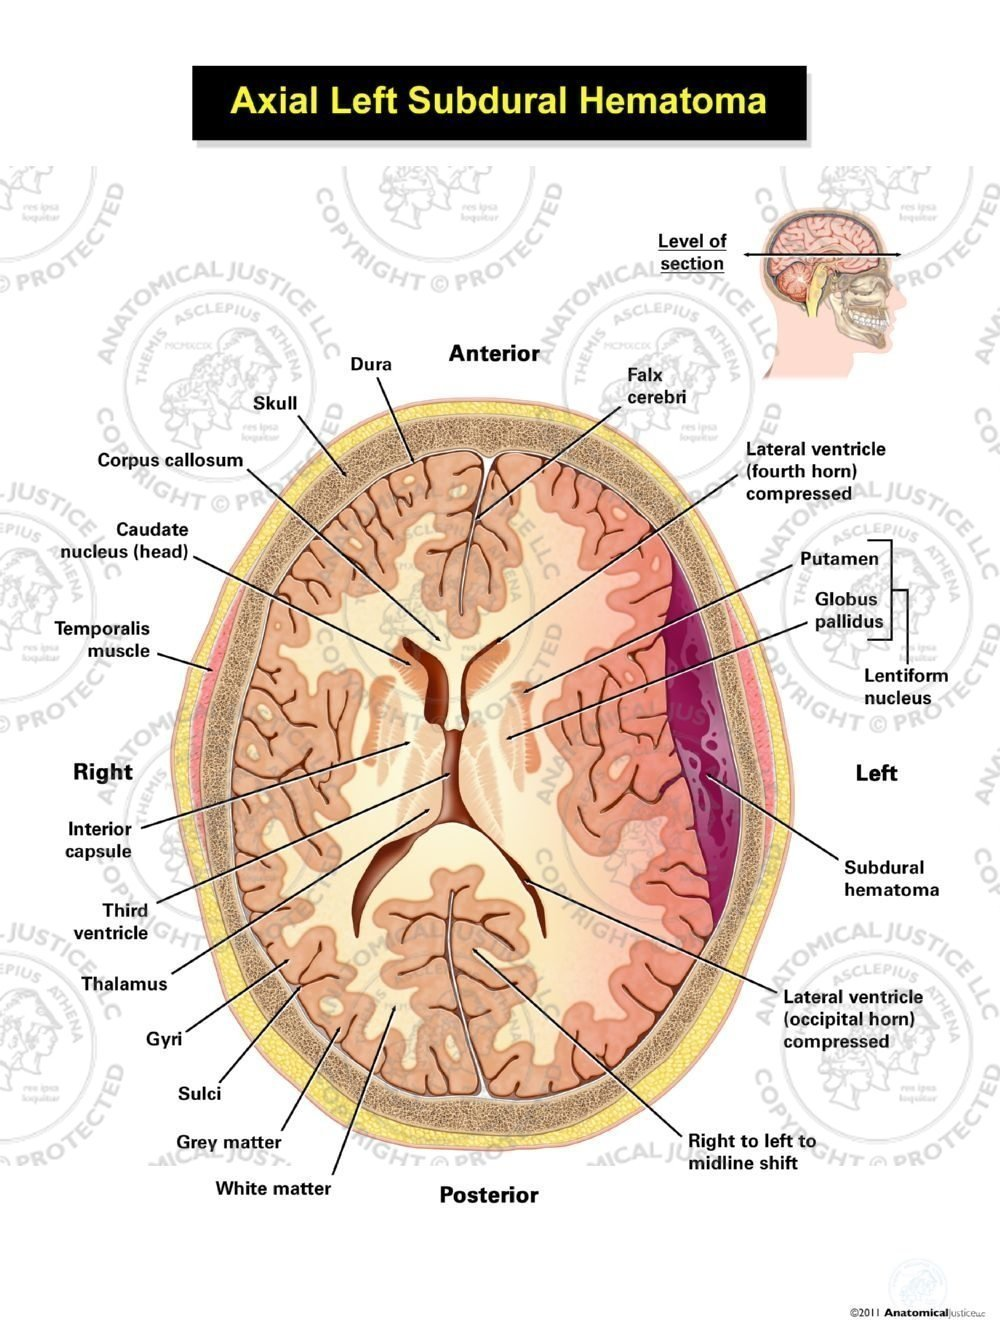 Left Axial Subdural Hematoma Anatomical Justice